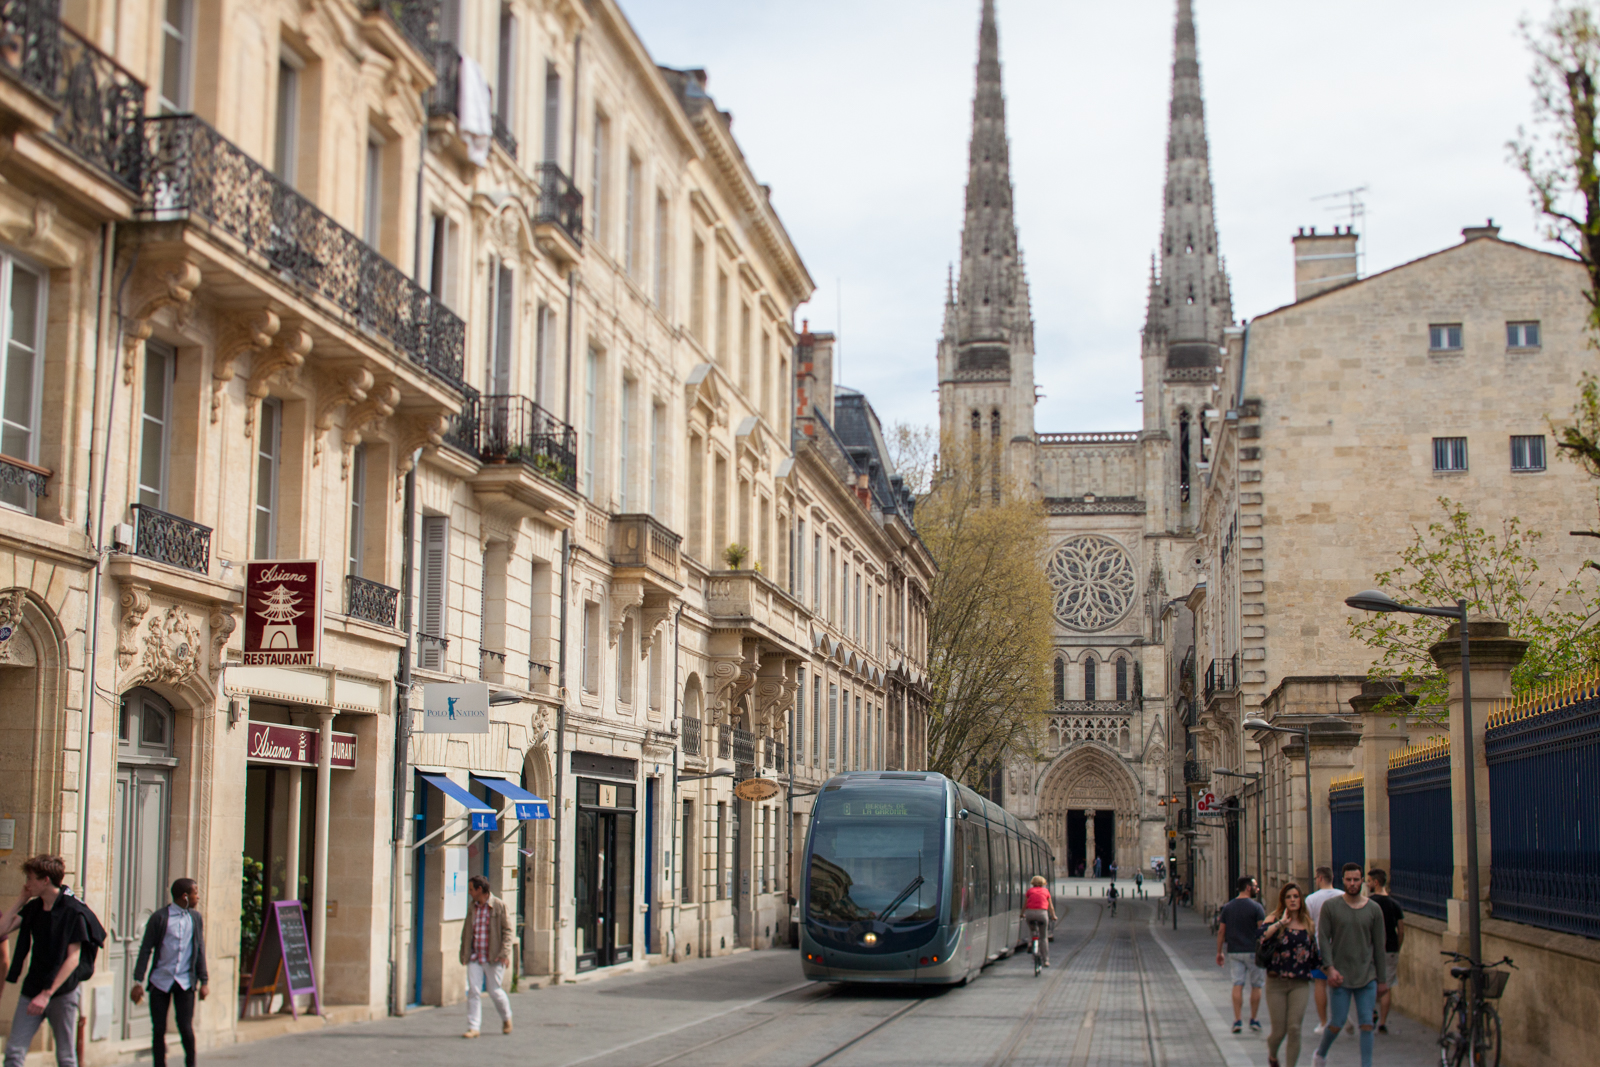 One of the efficient light-rail trains ambles up Rue Vital Carles with Cathédral Saint-André de Bordeaux in the distance. ©Kevin Day / Opening a Bottle